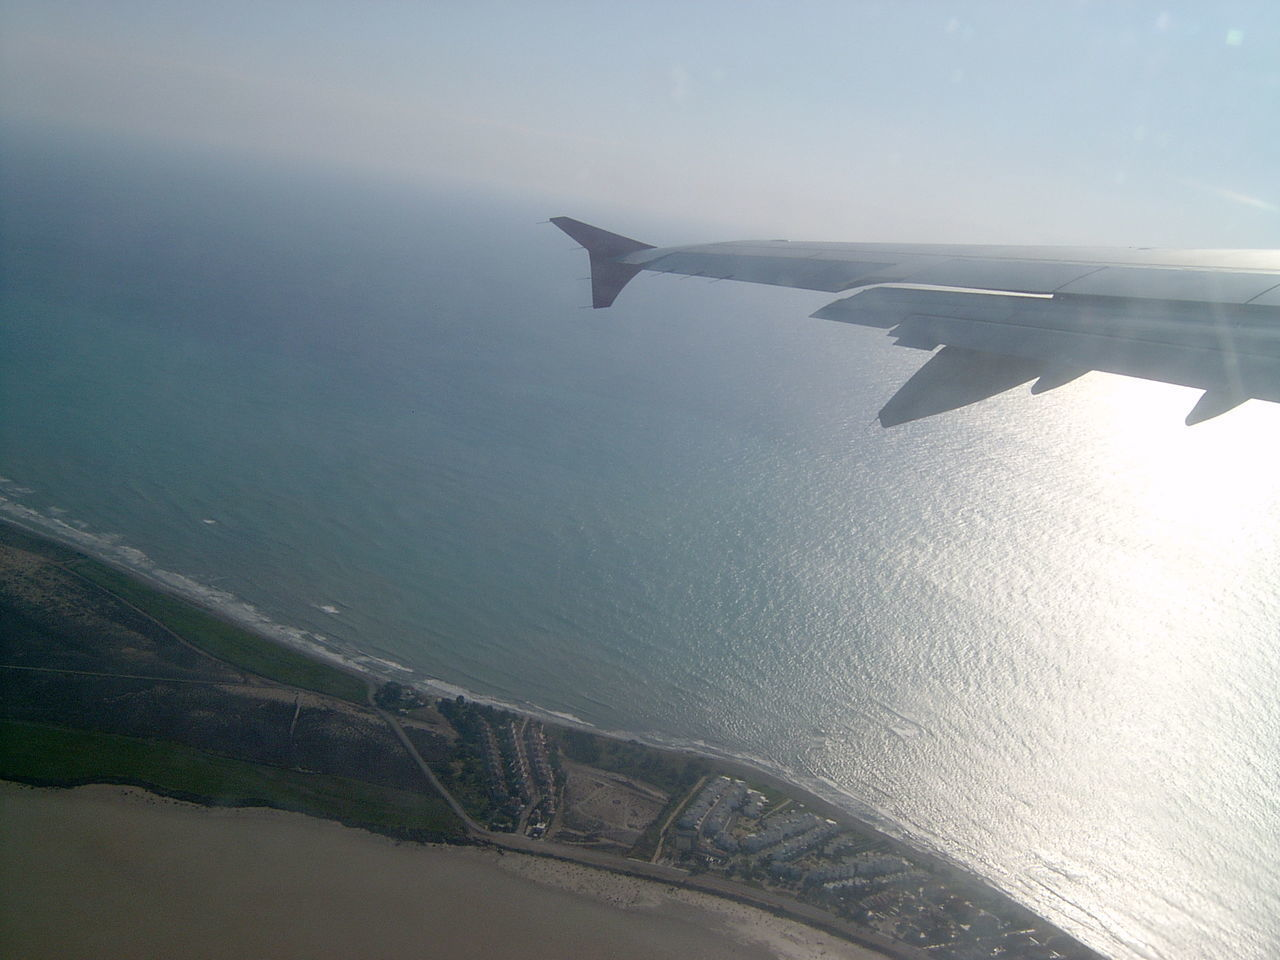 Aerial View Airplane Airplane Wing Flying Sea Sky Transportation Water